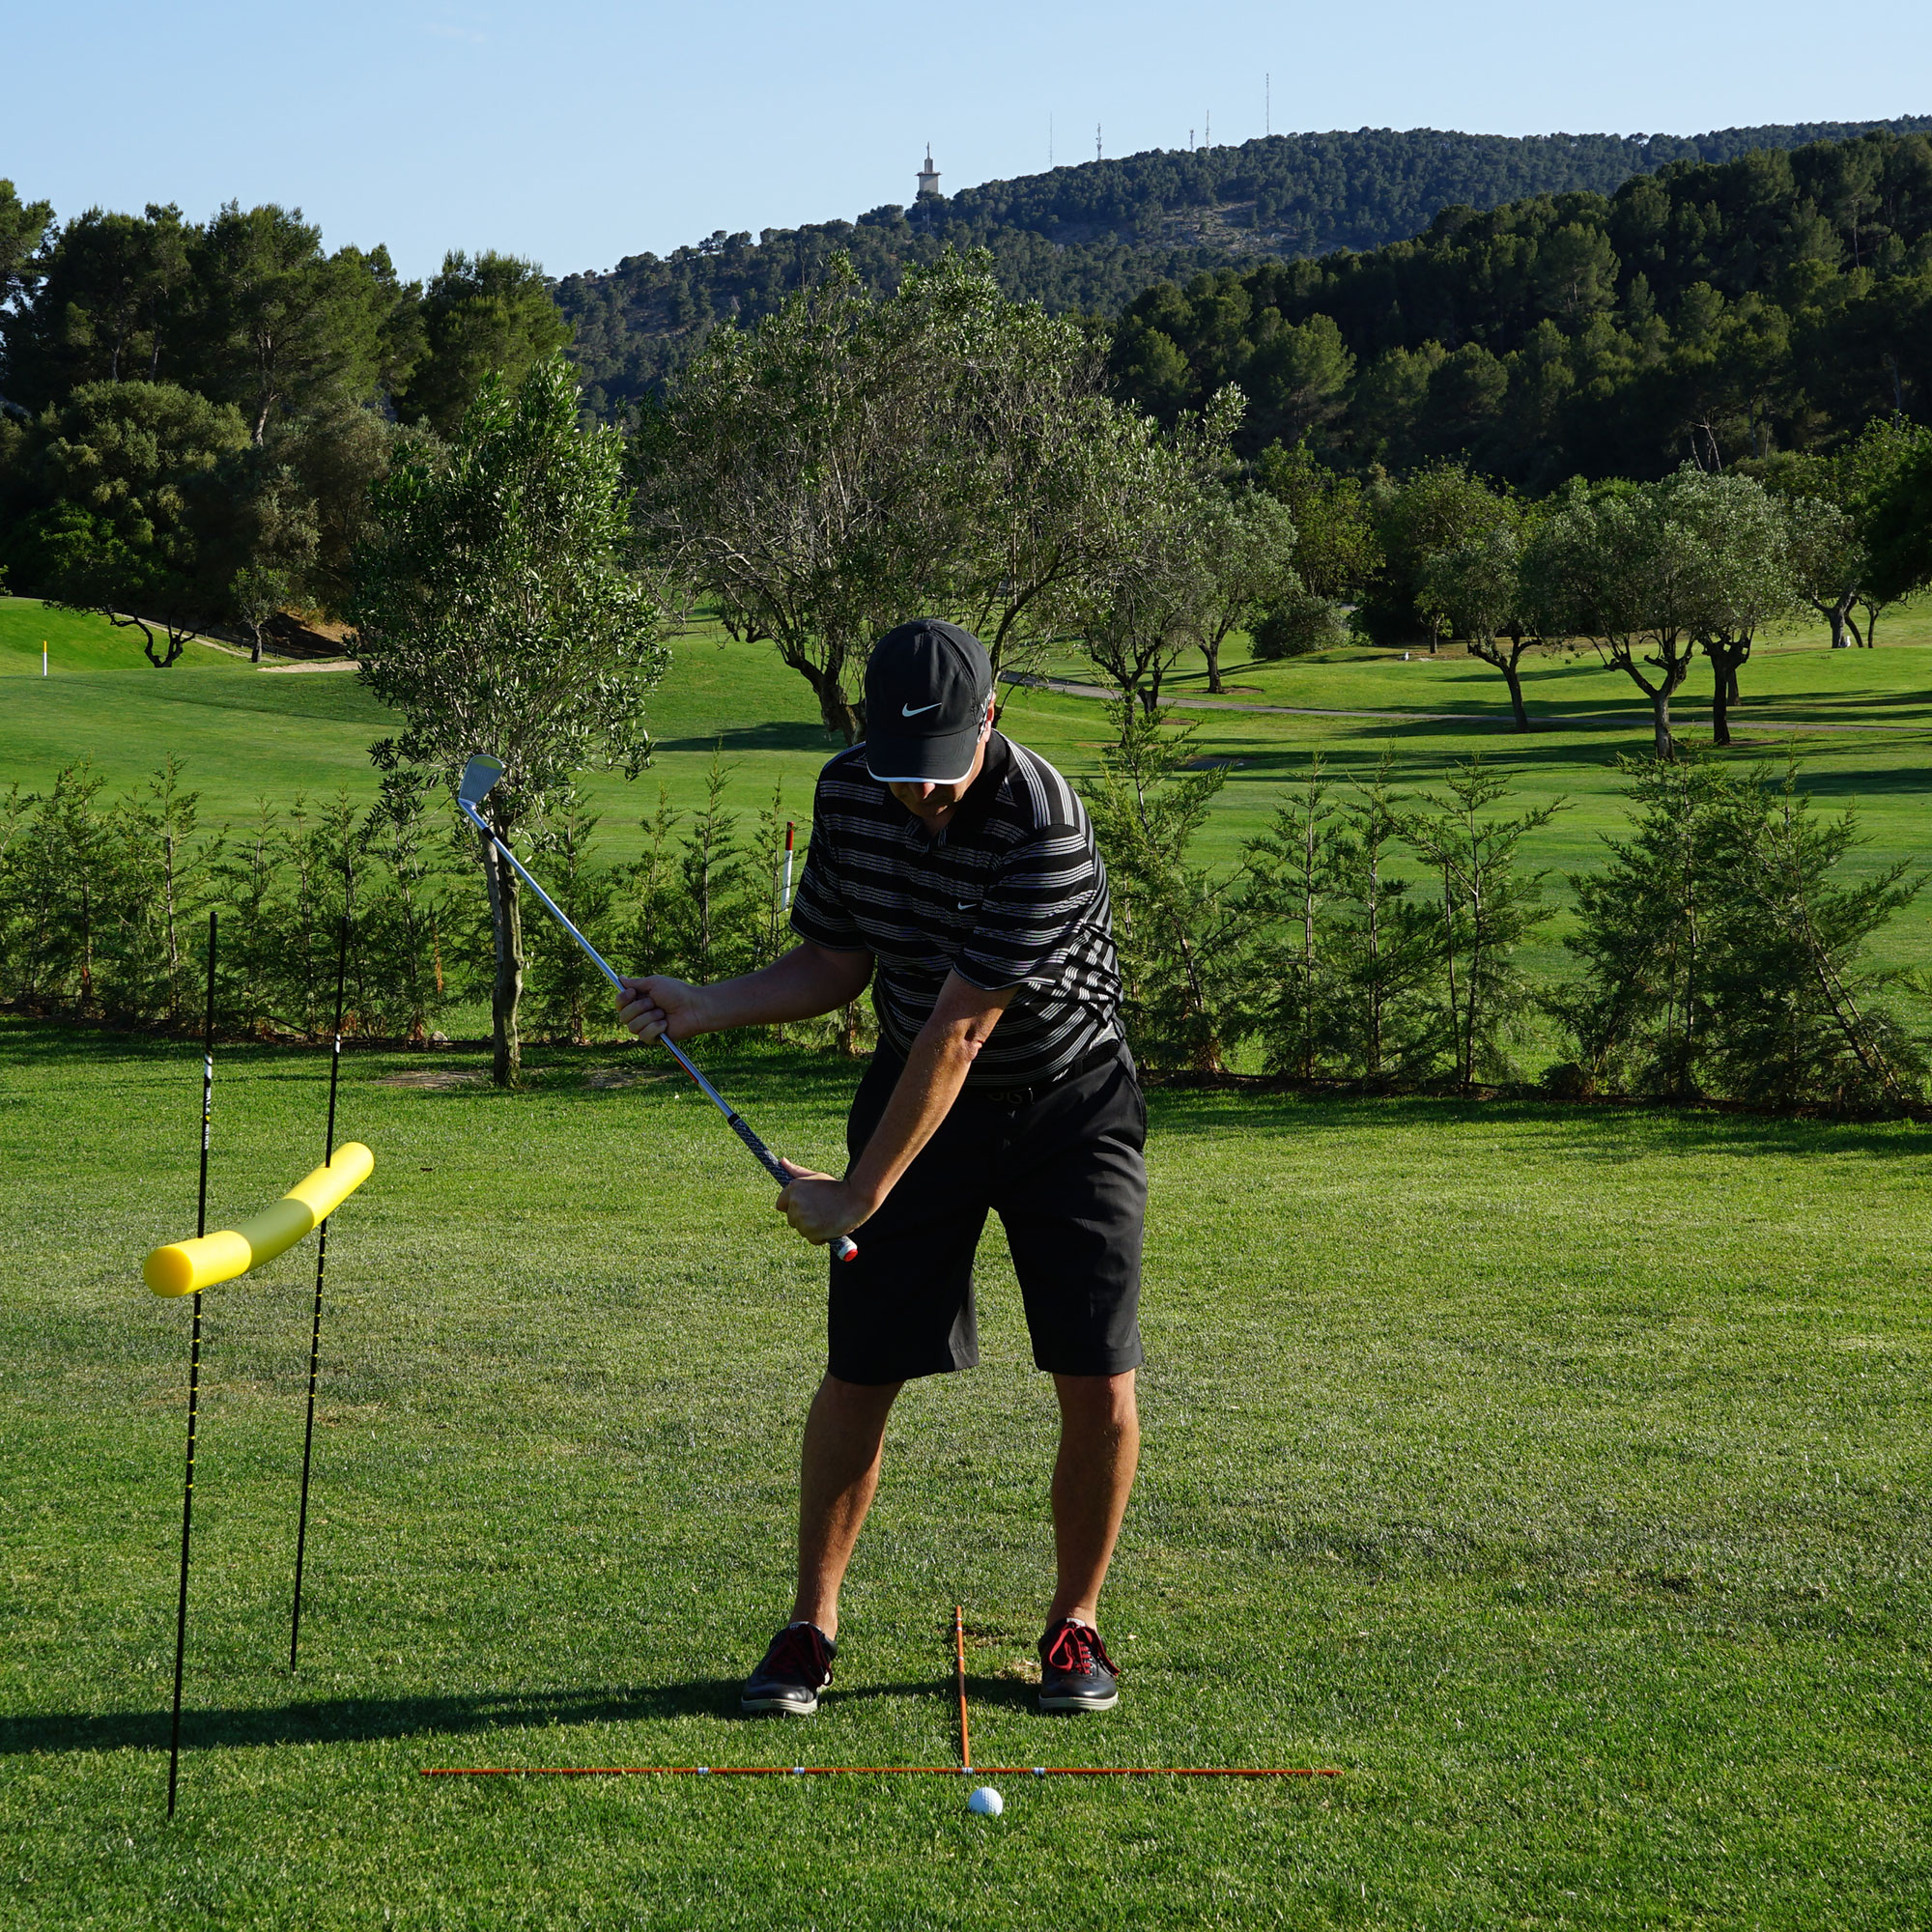 Golf Swing Lag and Release Timing - Part I